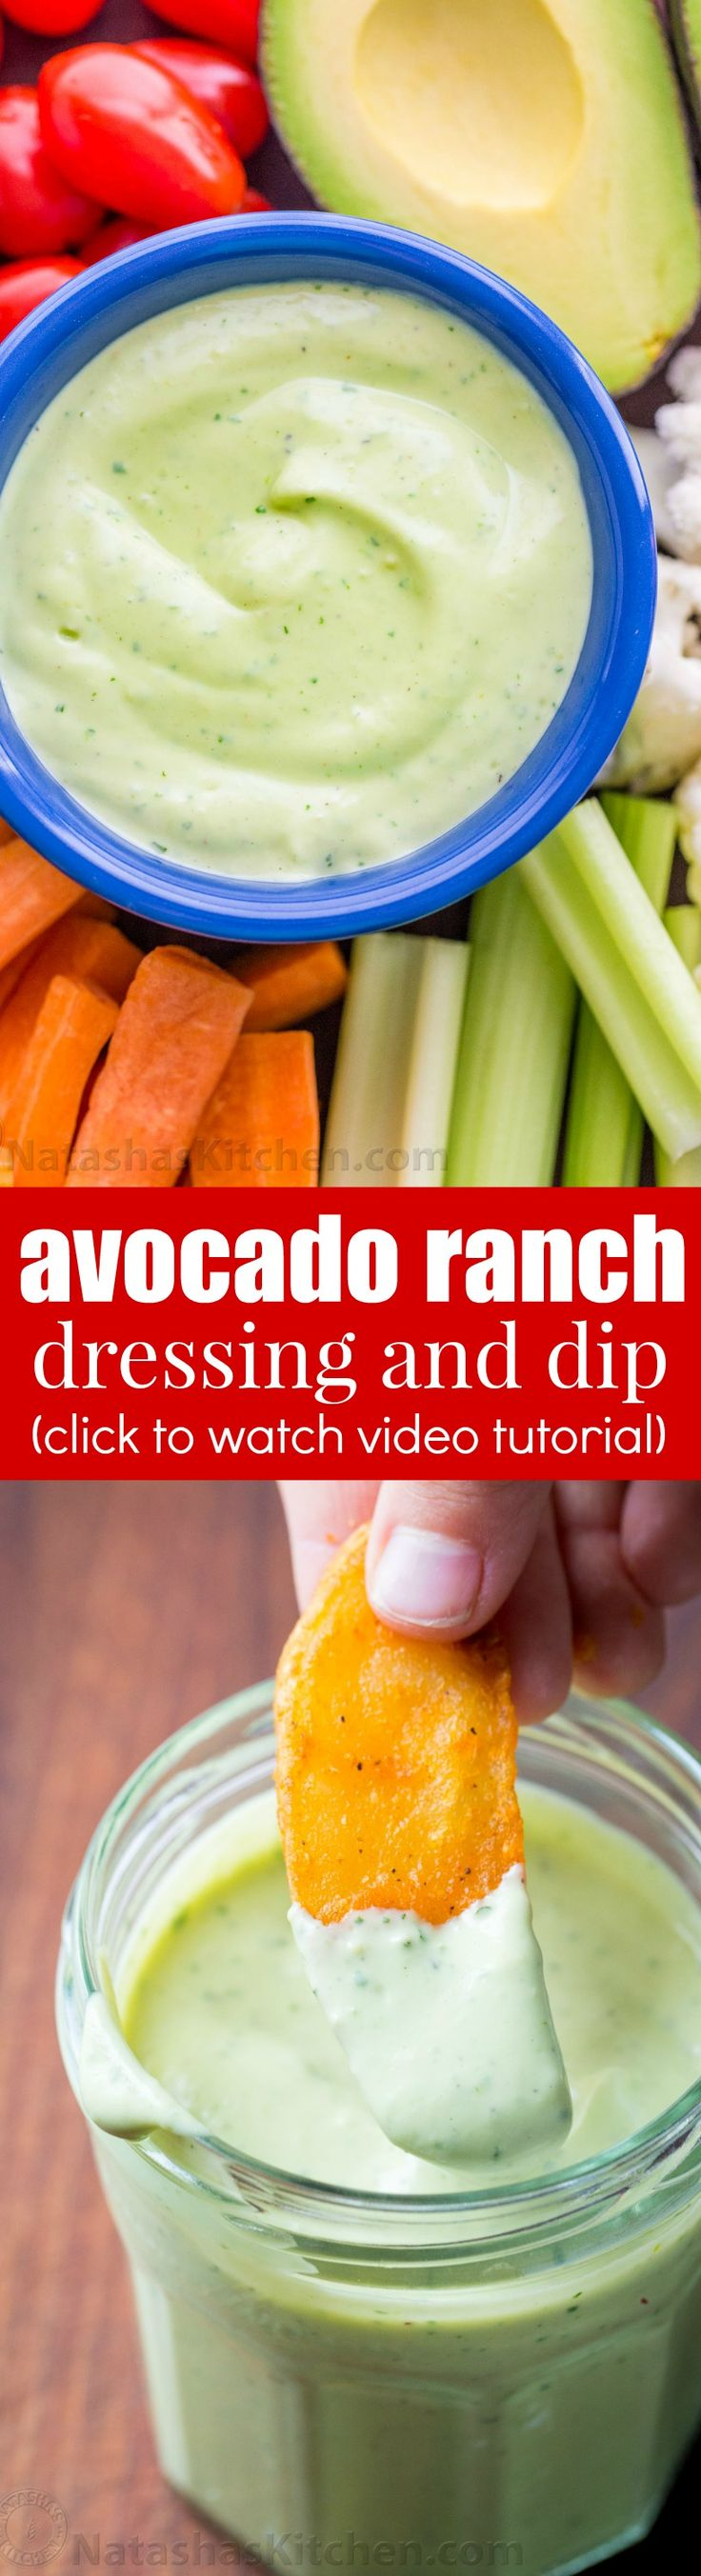 Slow Cooker: Avocado Ranch Dressing and Dip (VIDEO Recipe) - Na...